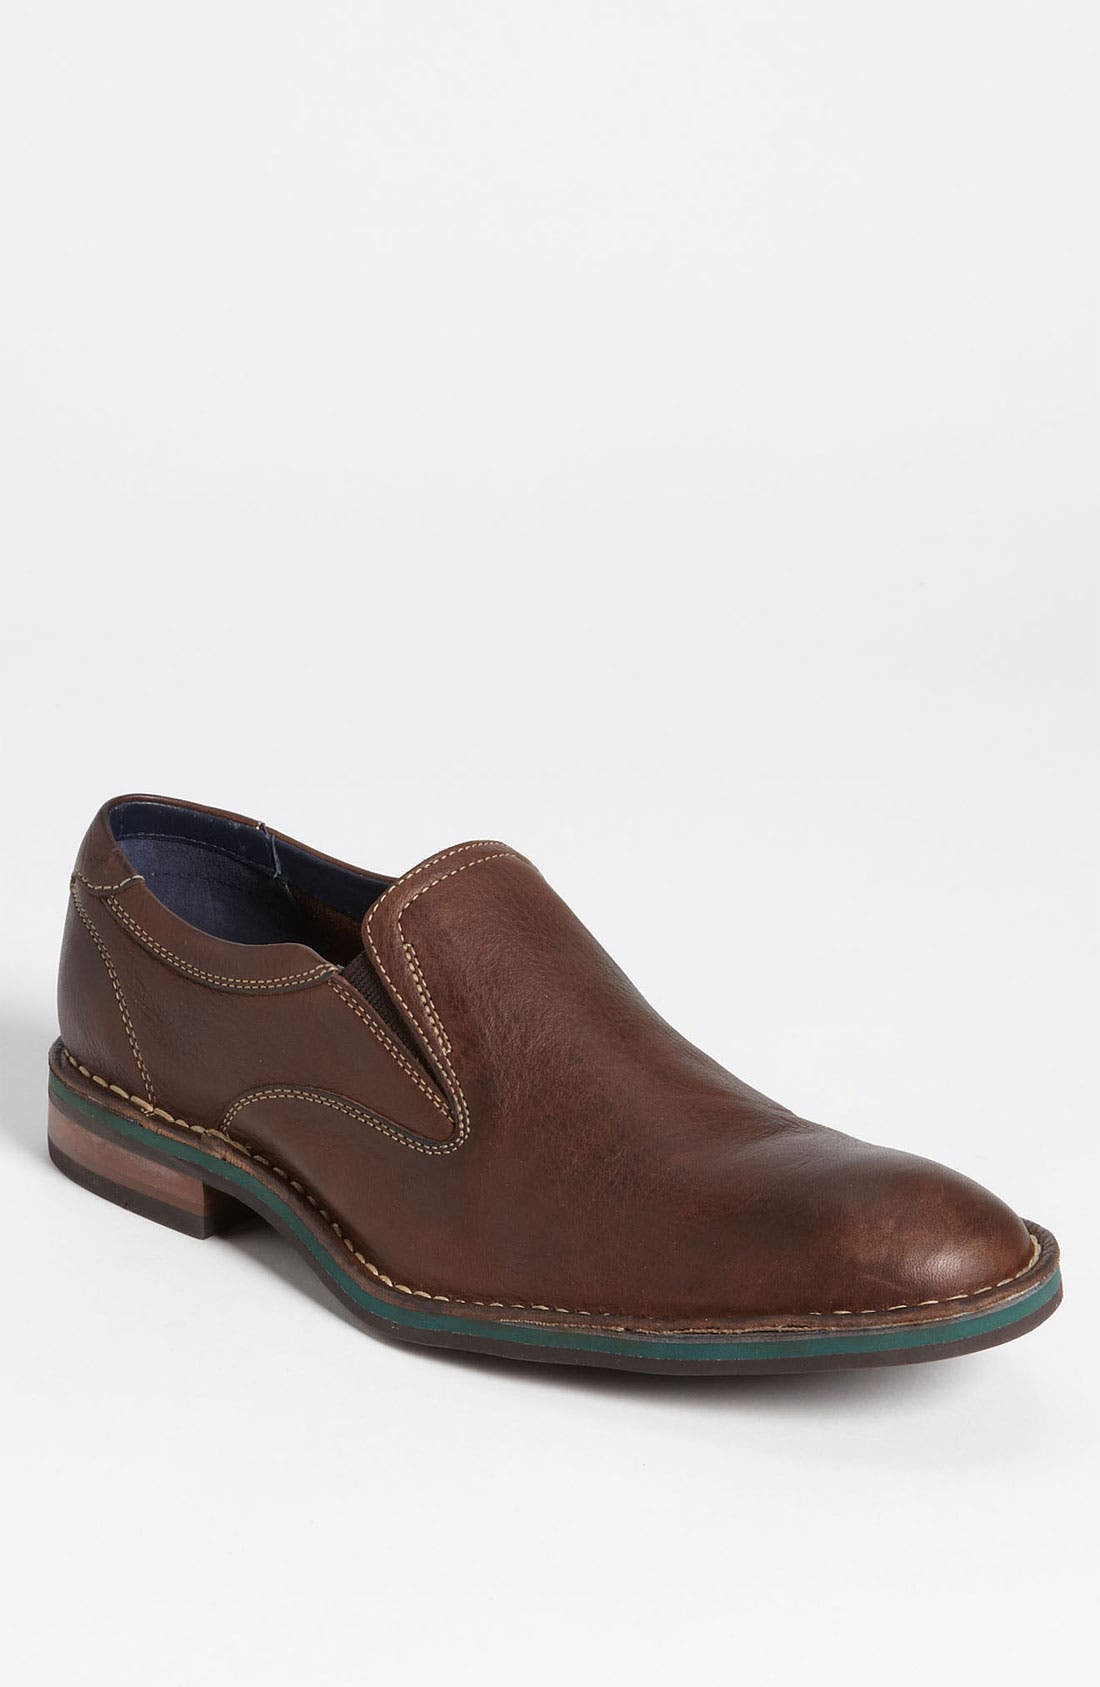 Alternate Image 1 Selected - Cole Haan 'Air Stratton' Casual Loafer